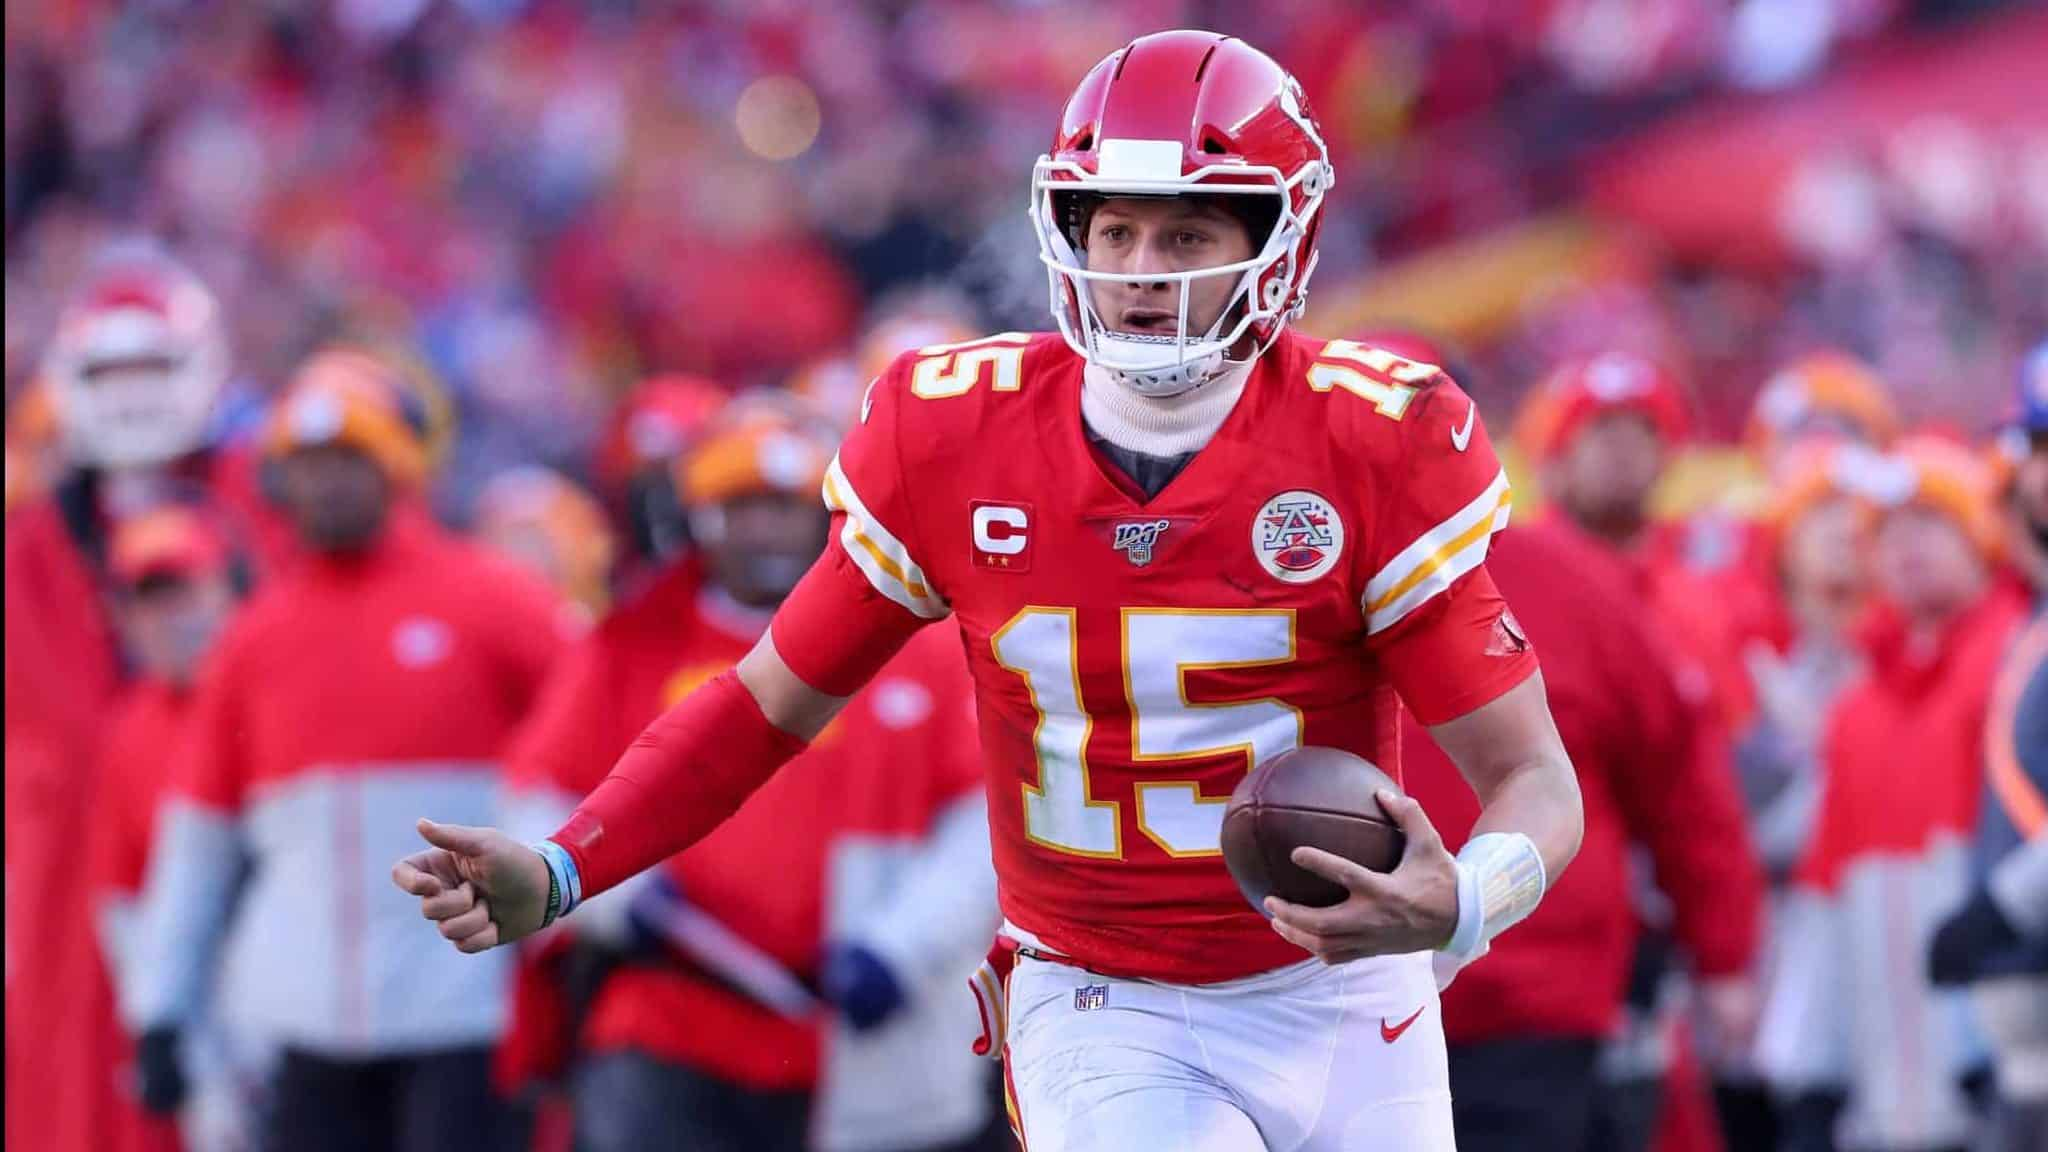 KANSAS CITY, MISSOURI - JANUARY 19: Patrick Mahomes #15 of the Kansas City Chiefs runs on his way to scoring a 27 yard touchdown in the second quarter against the Tennessee Titans in the AFC Championship Game at Arrowhead Stadium on January 19, 2020 in Kansas City, Missouri.